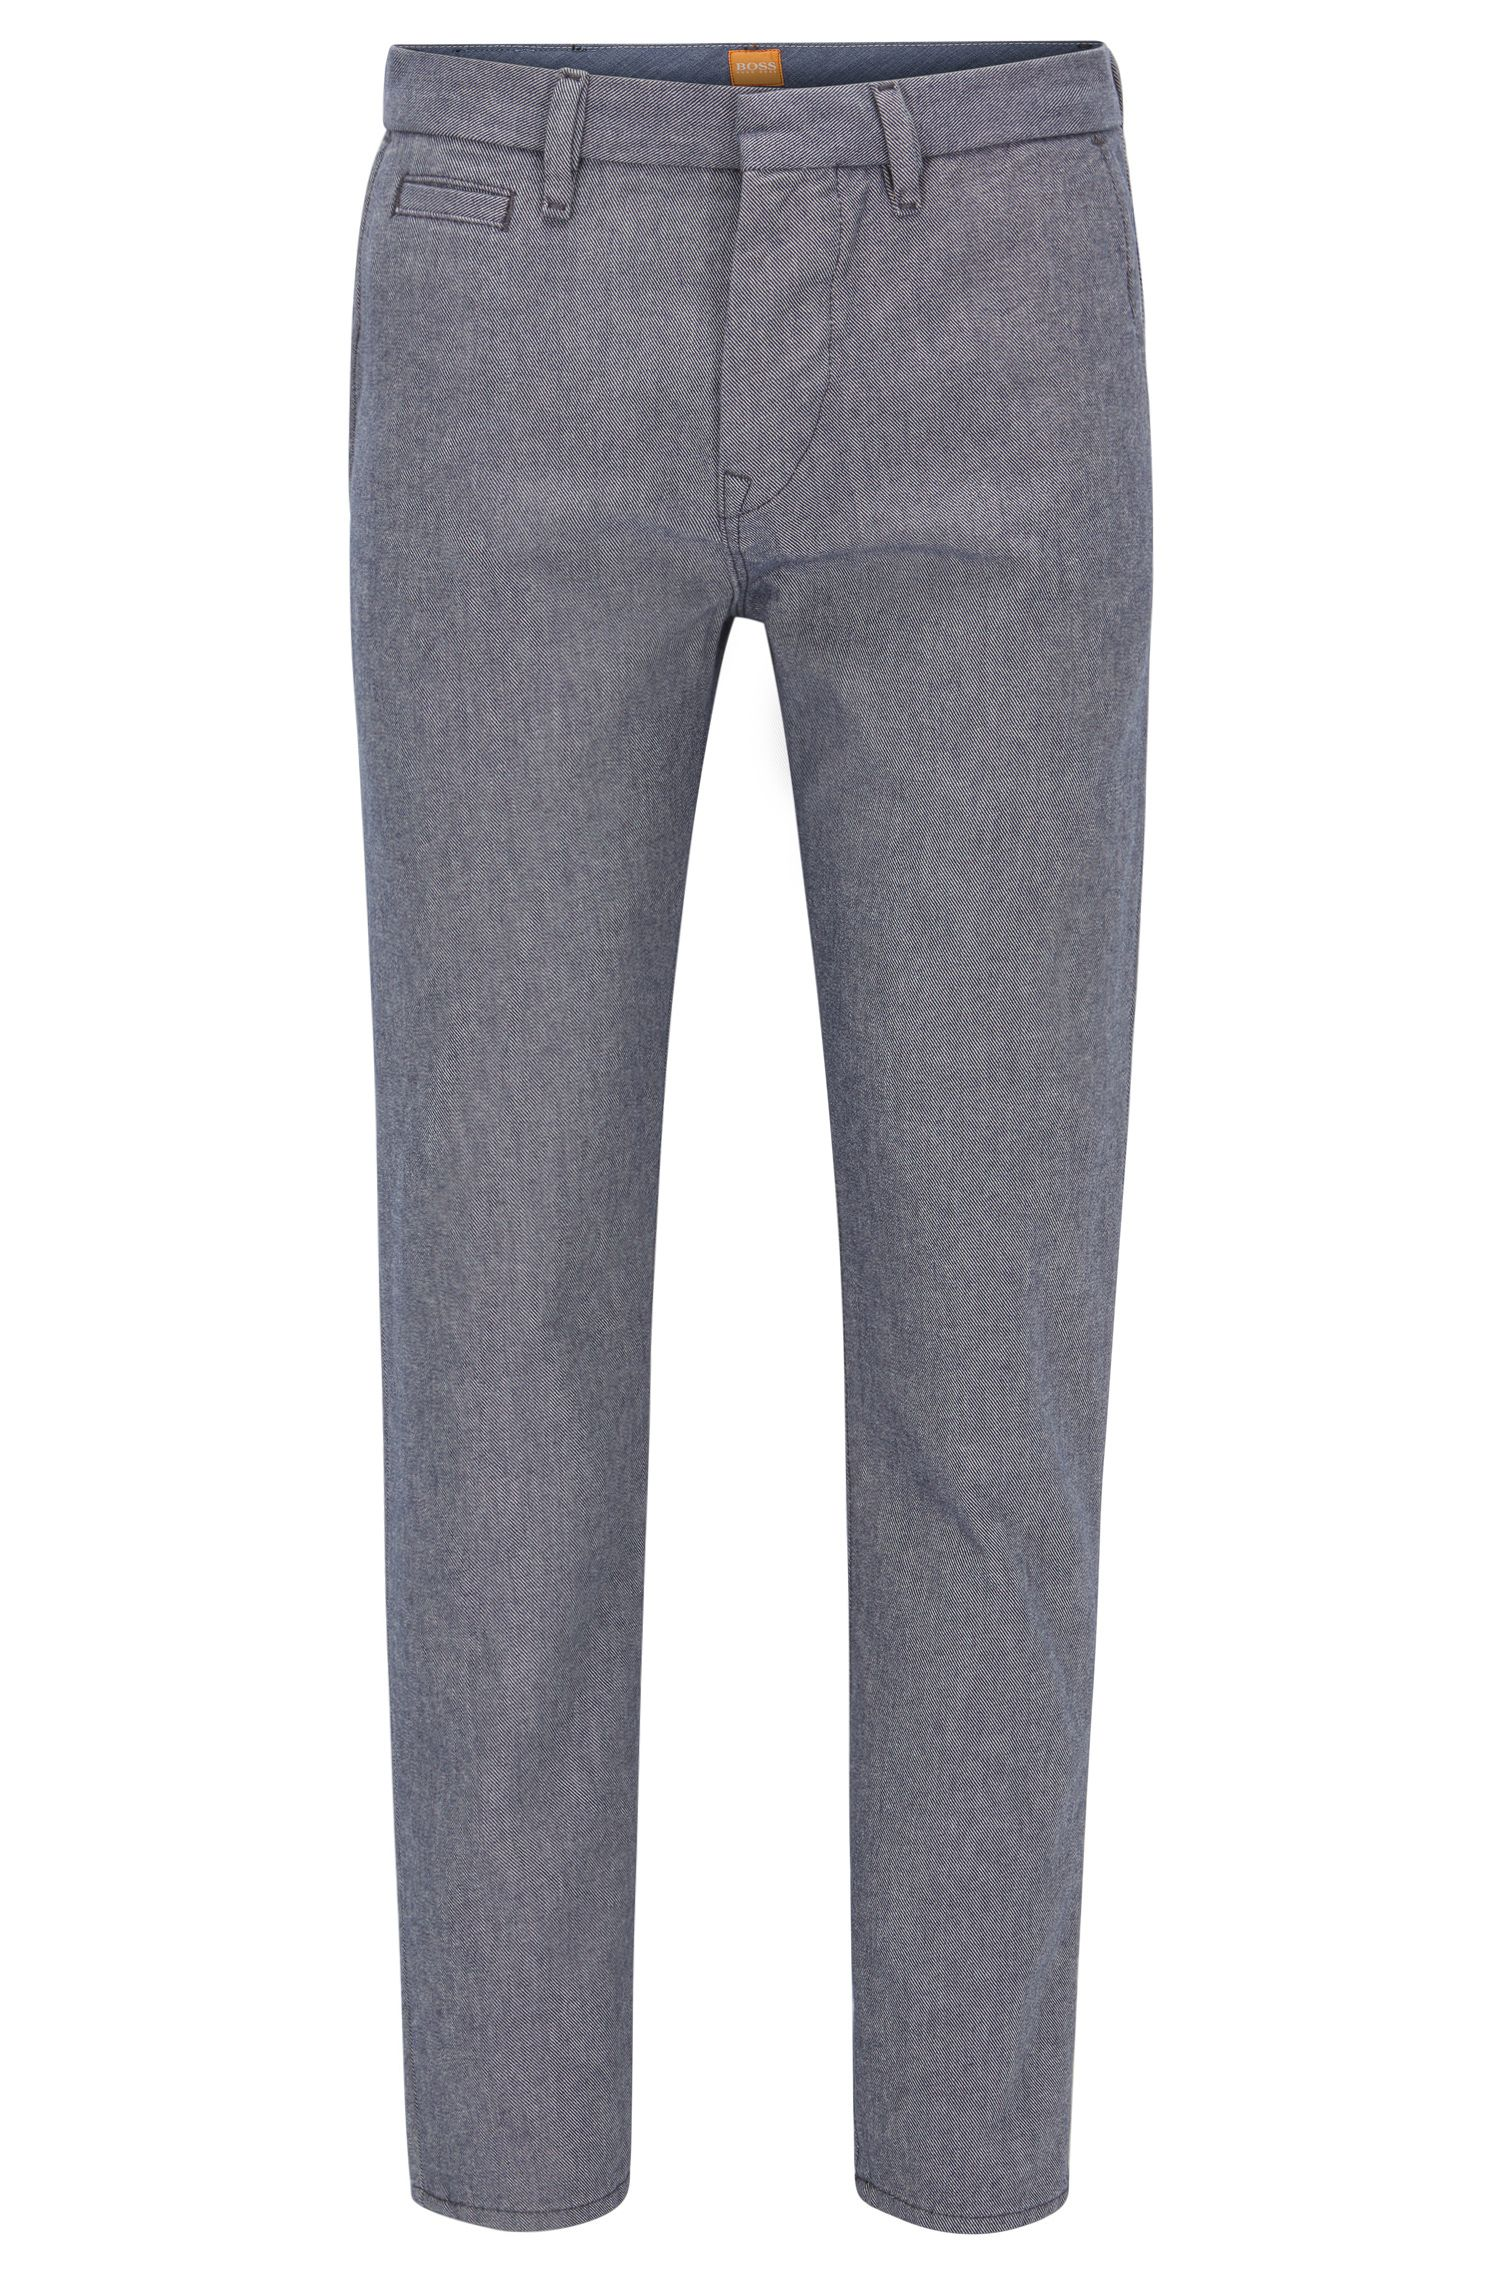 9.5 oz Cotton Wool Pant, Tapered Fit | Orange90 Winchester